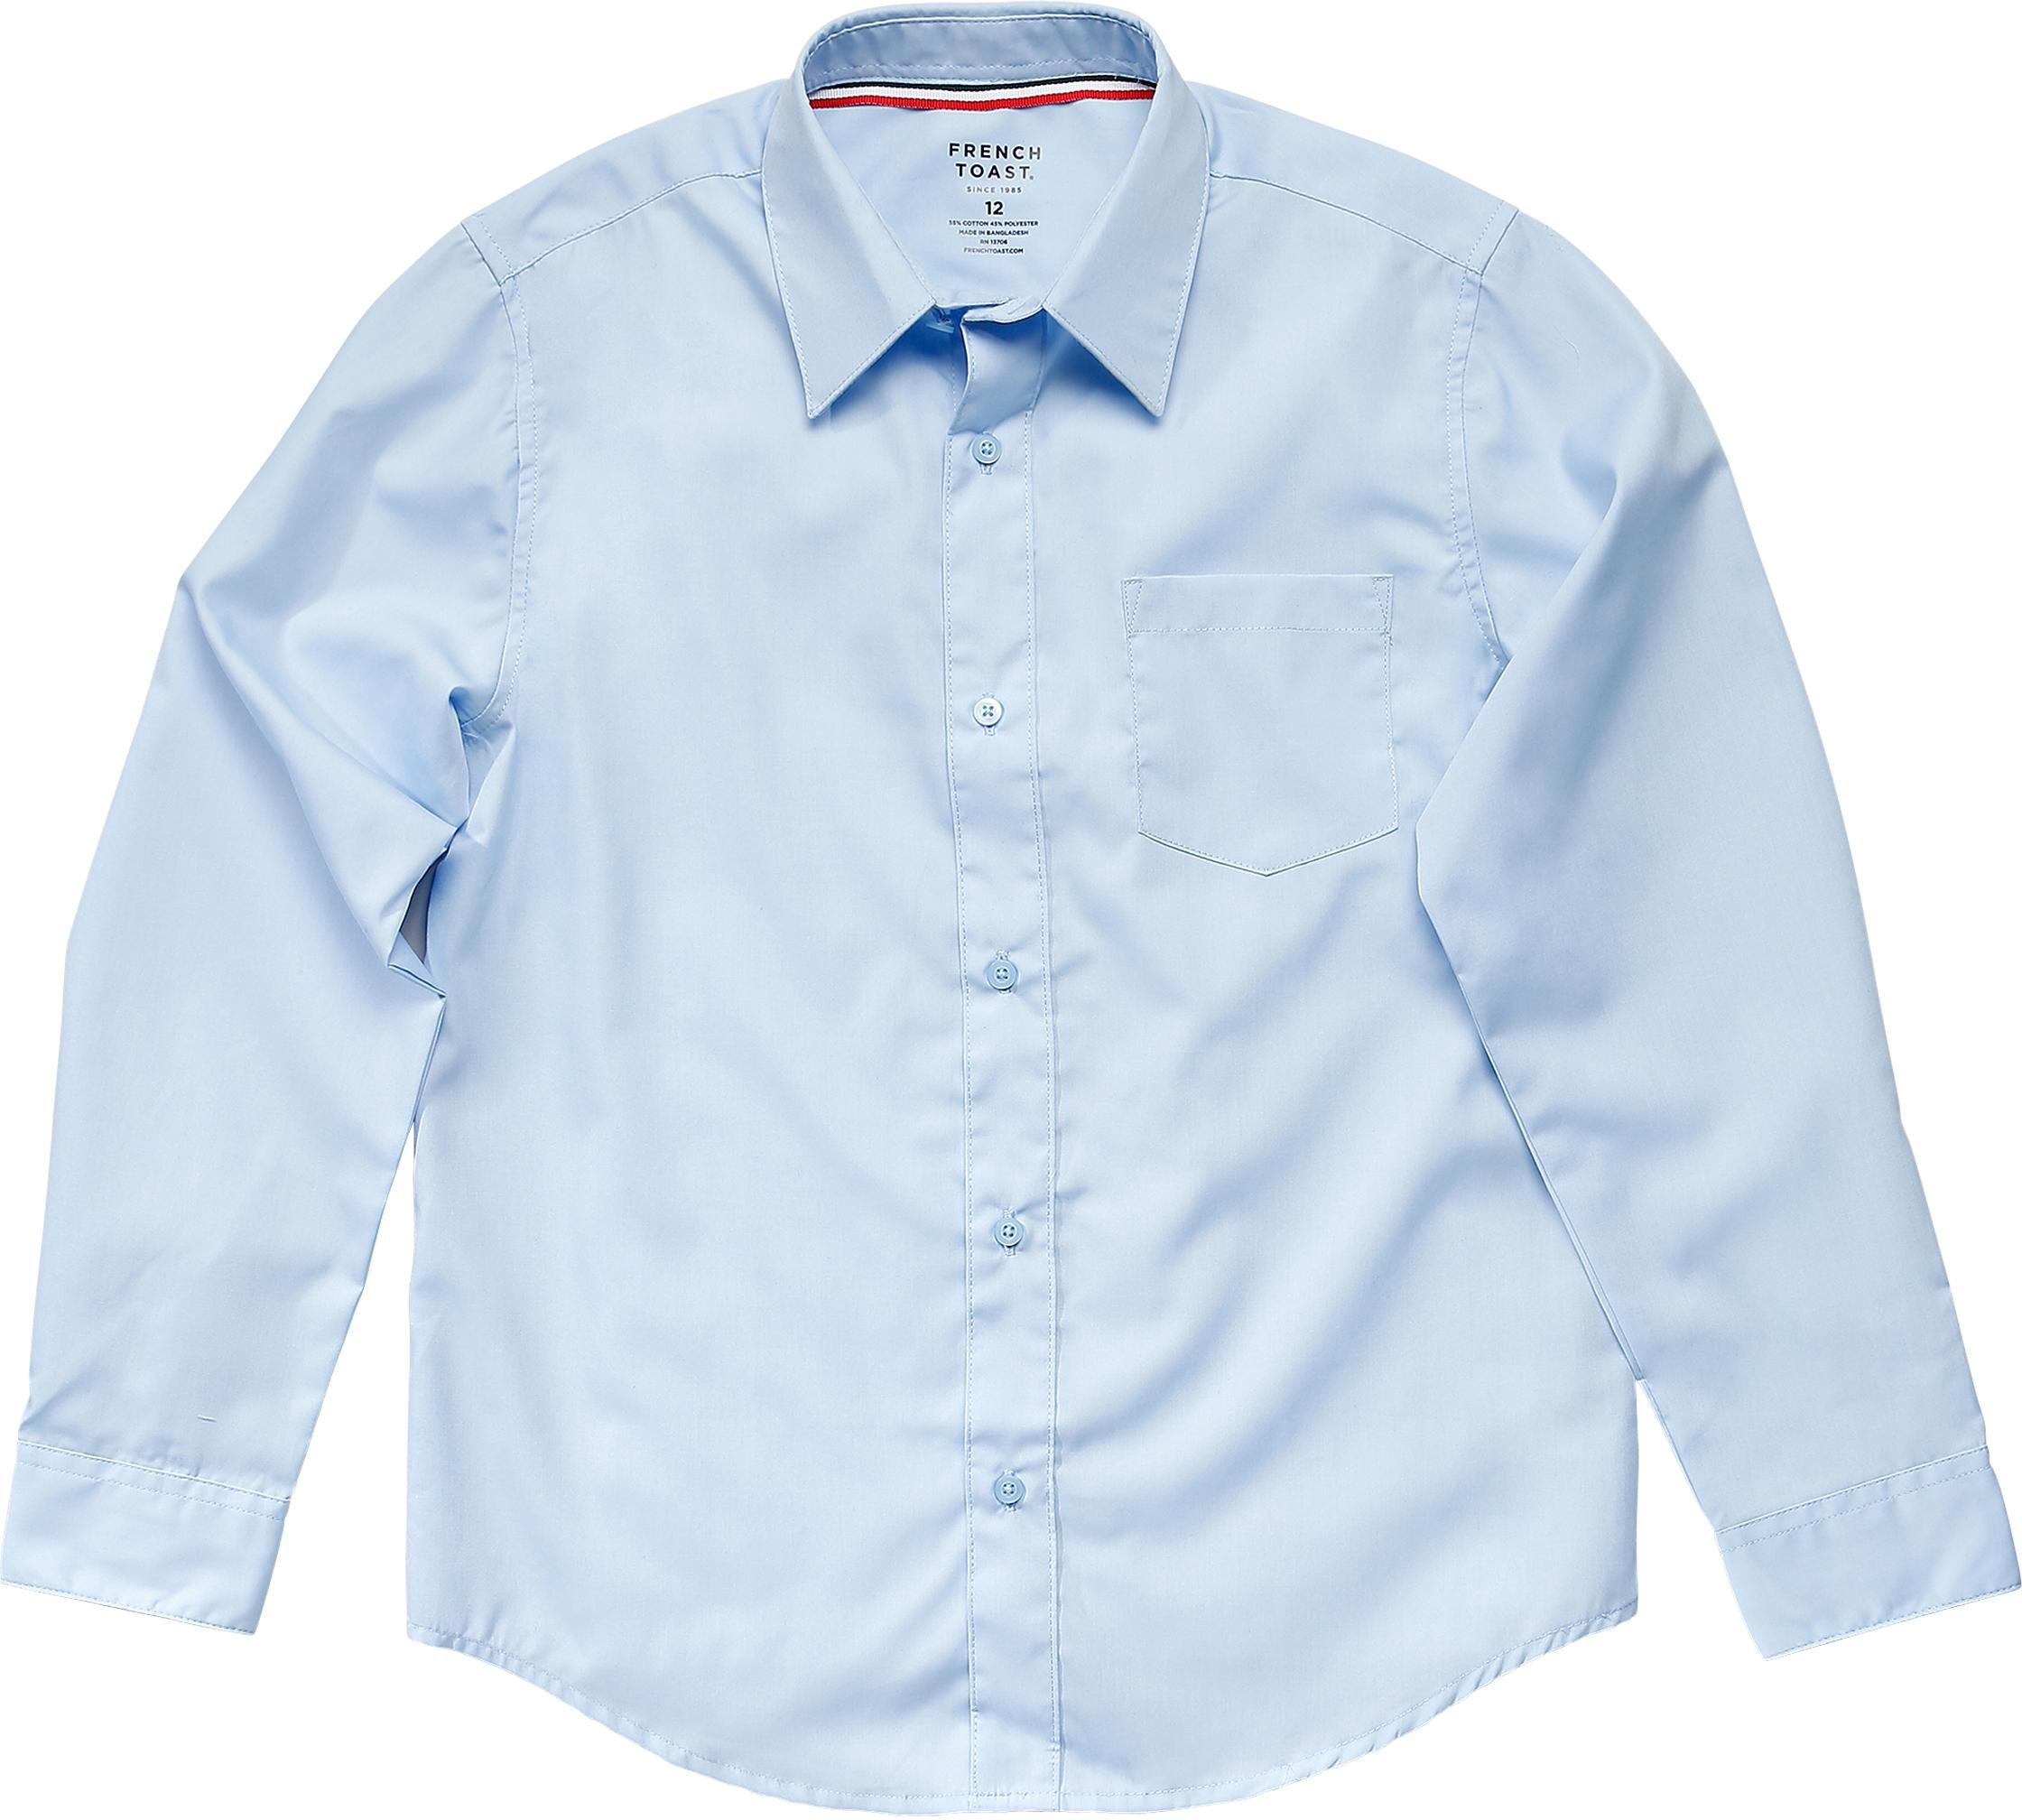 French Toast School Uniform Boys Long Sleeve Classic Dress Shirt, Blue, 6